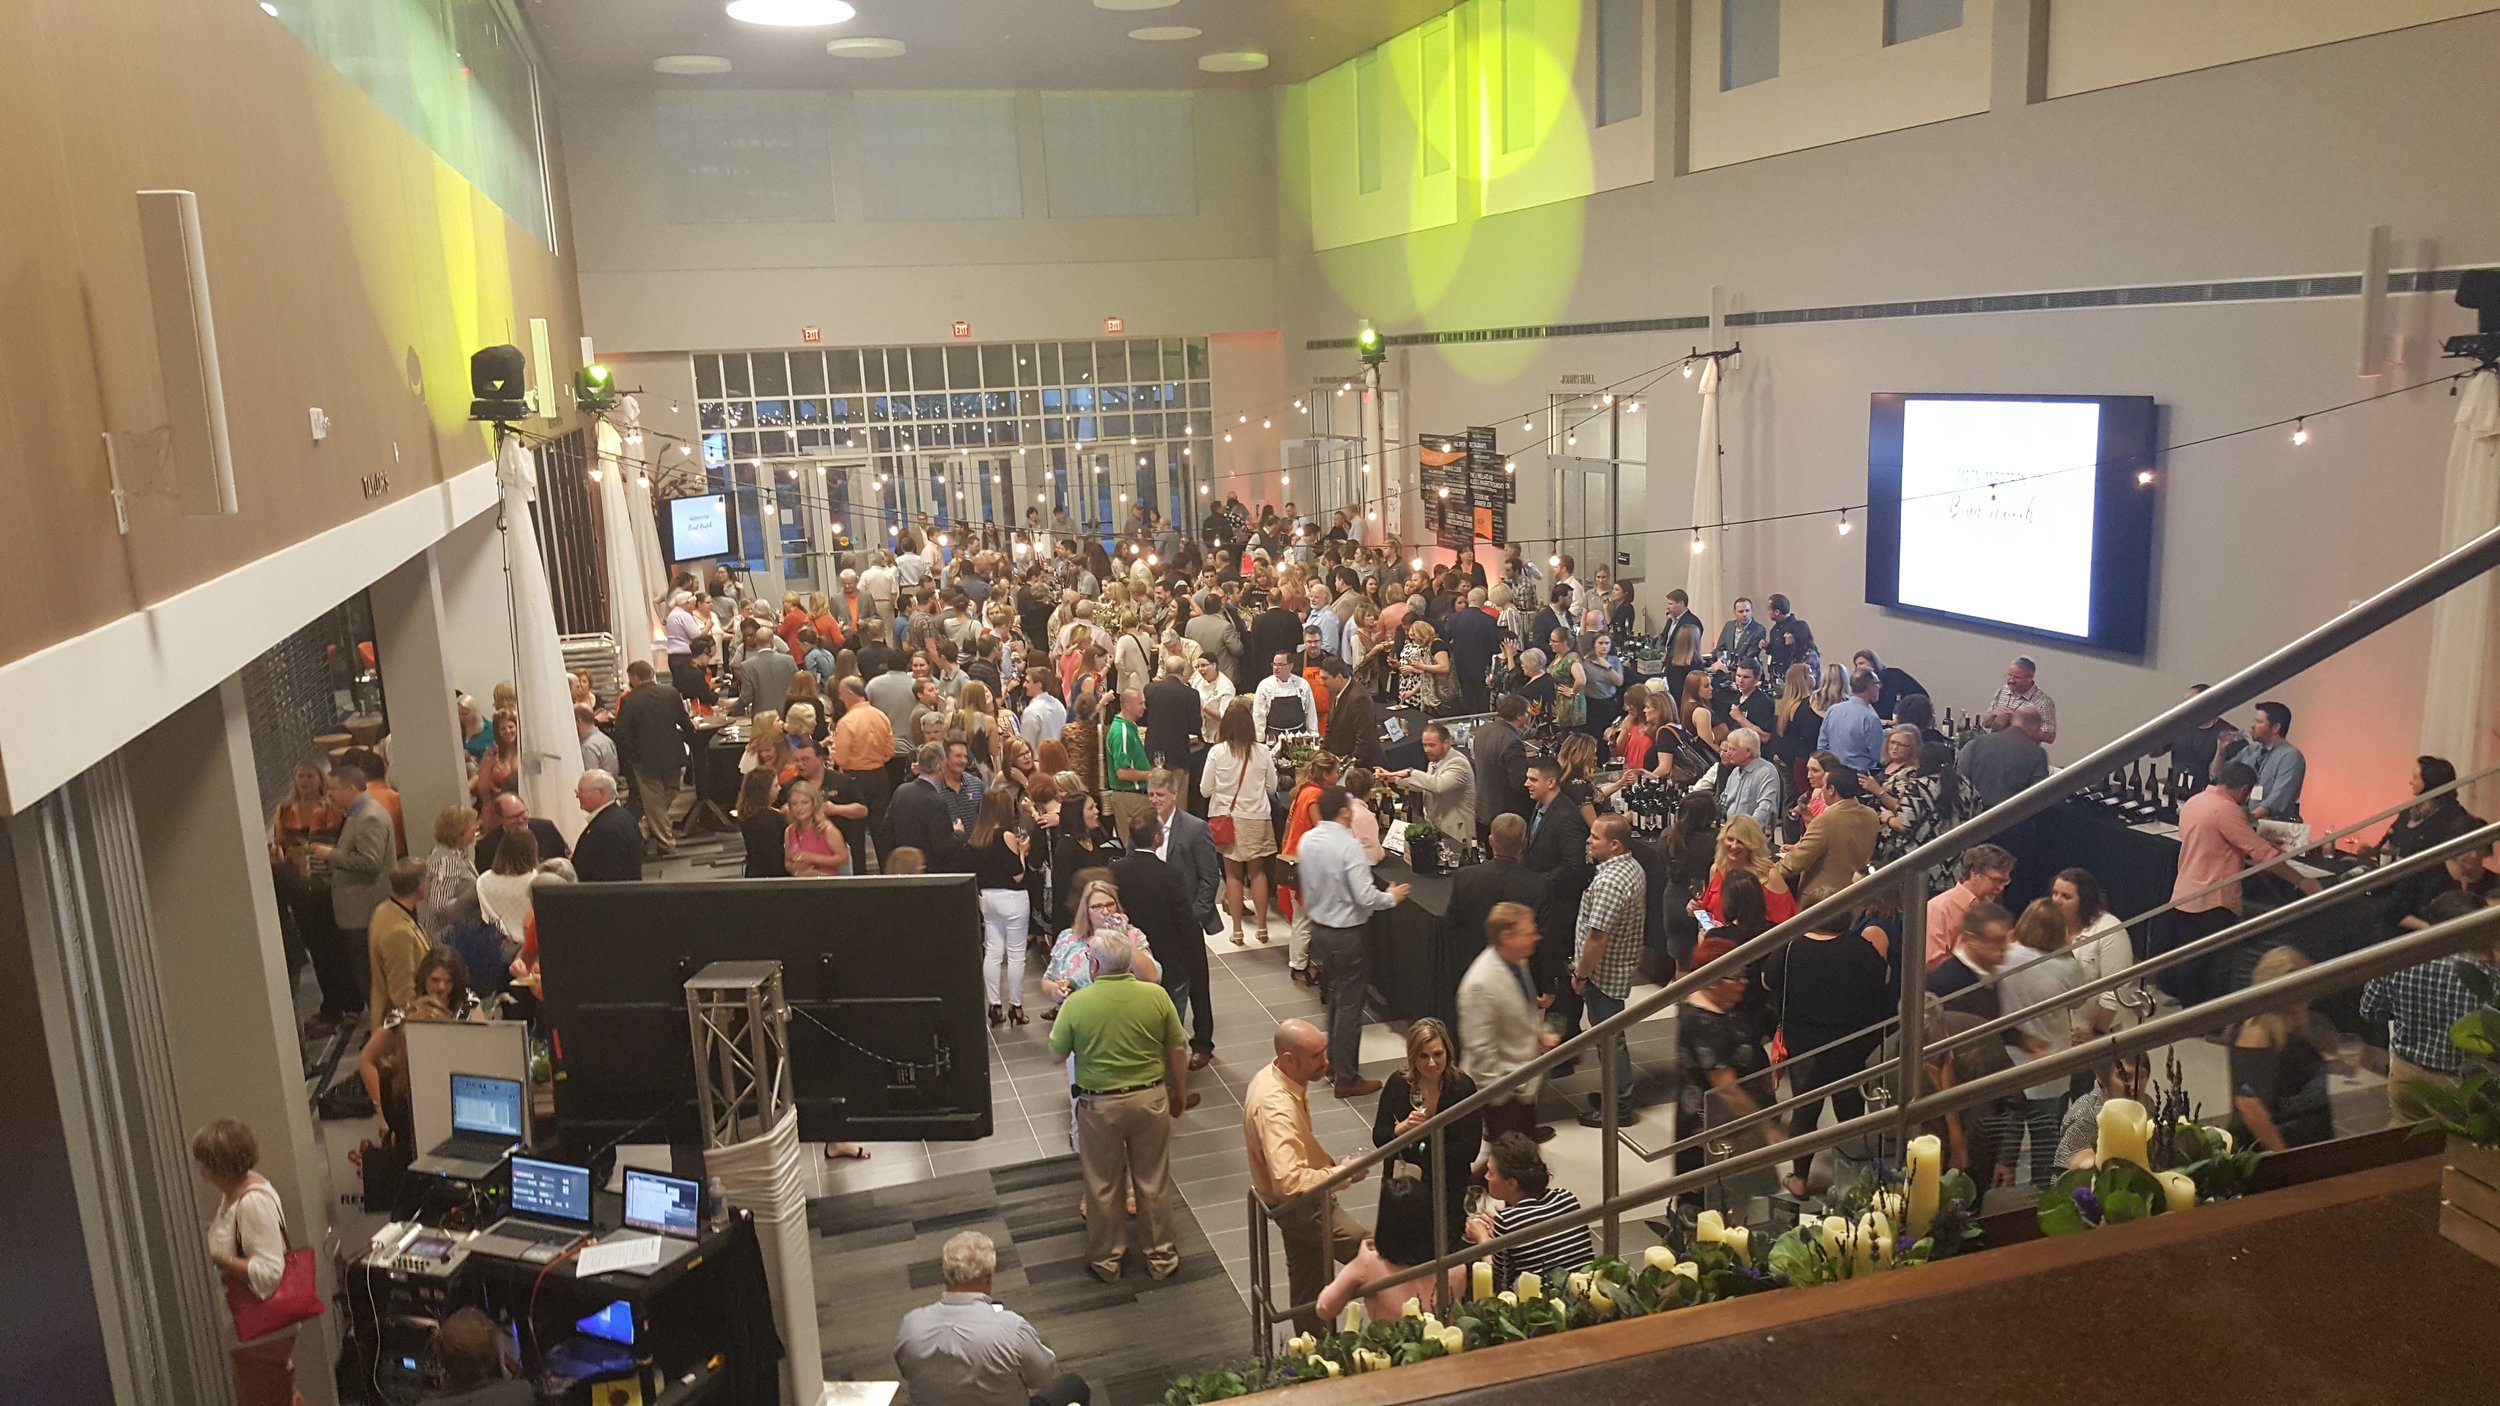 The Grand Tasting, hosted in the new Human Sciences building at Oklahoma State University